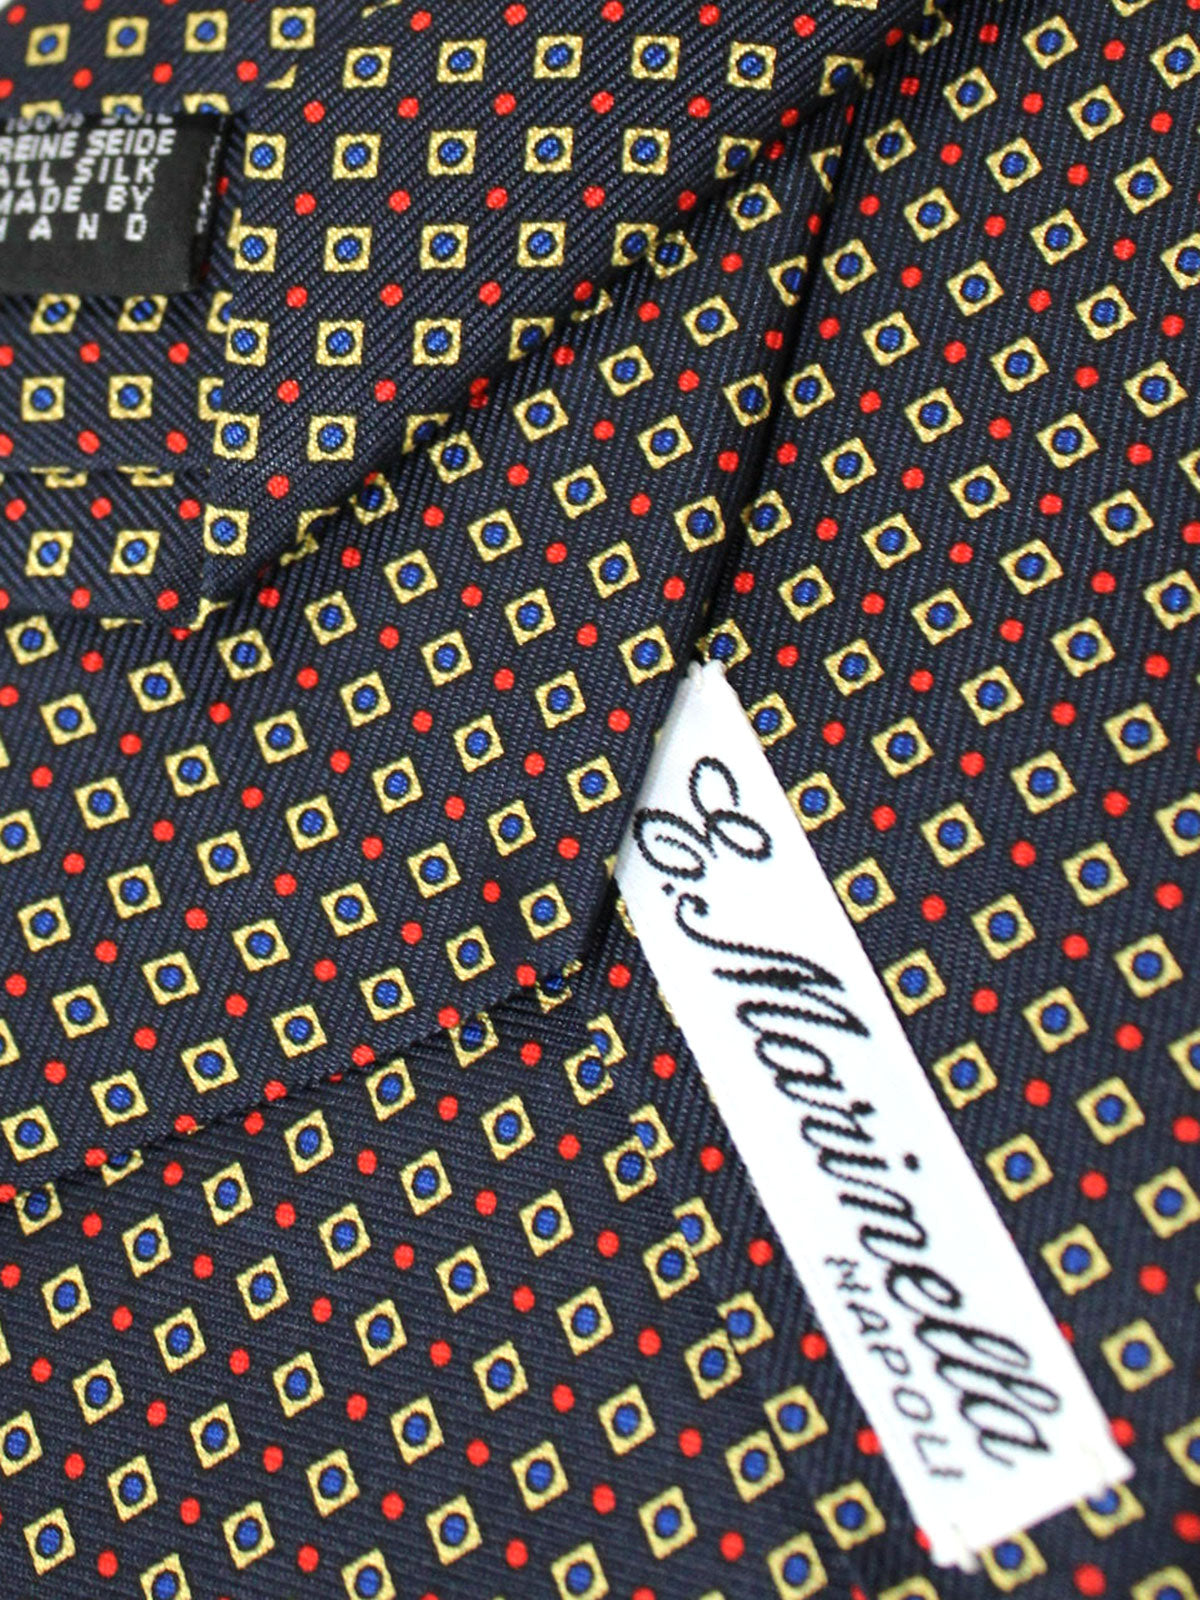 E. Marinella Tie Dark Blue Red Gold Geometric - Wide Necktie